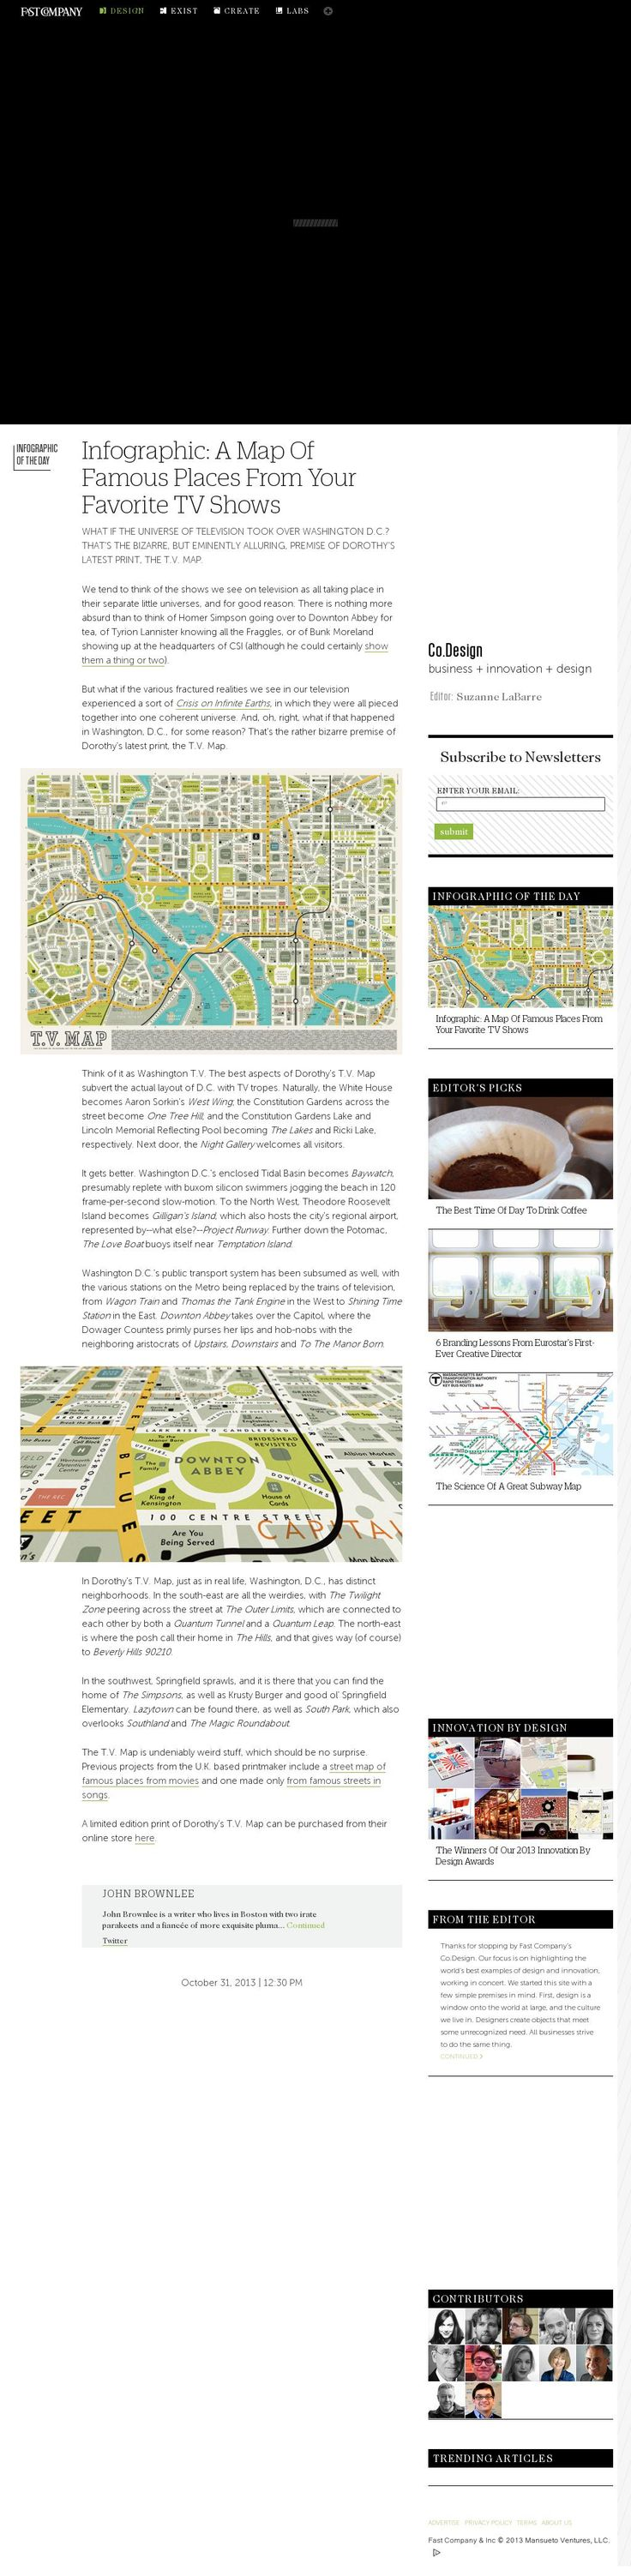 The website 'http://www.fastcodesign.com/3020941/infographic-of-the-day/infographic-a-map-of-famous-places-in-all-your-favorite-tv-shows' courtesy of @Pinstamatic (http://pinstamatic.com)